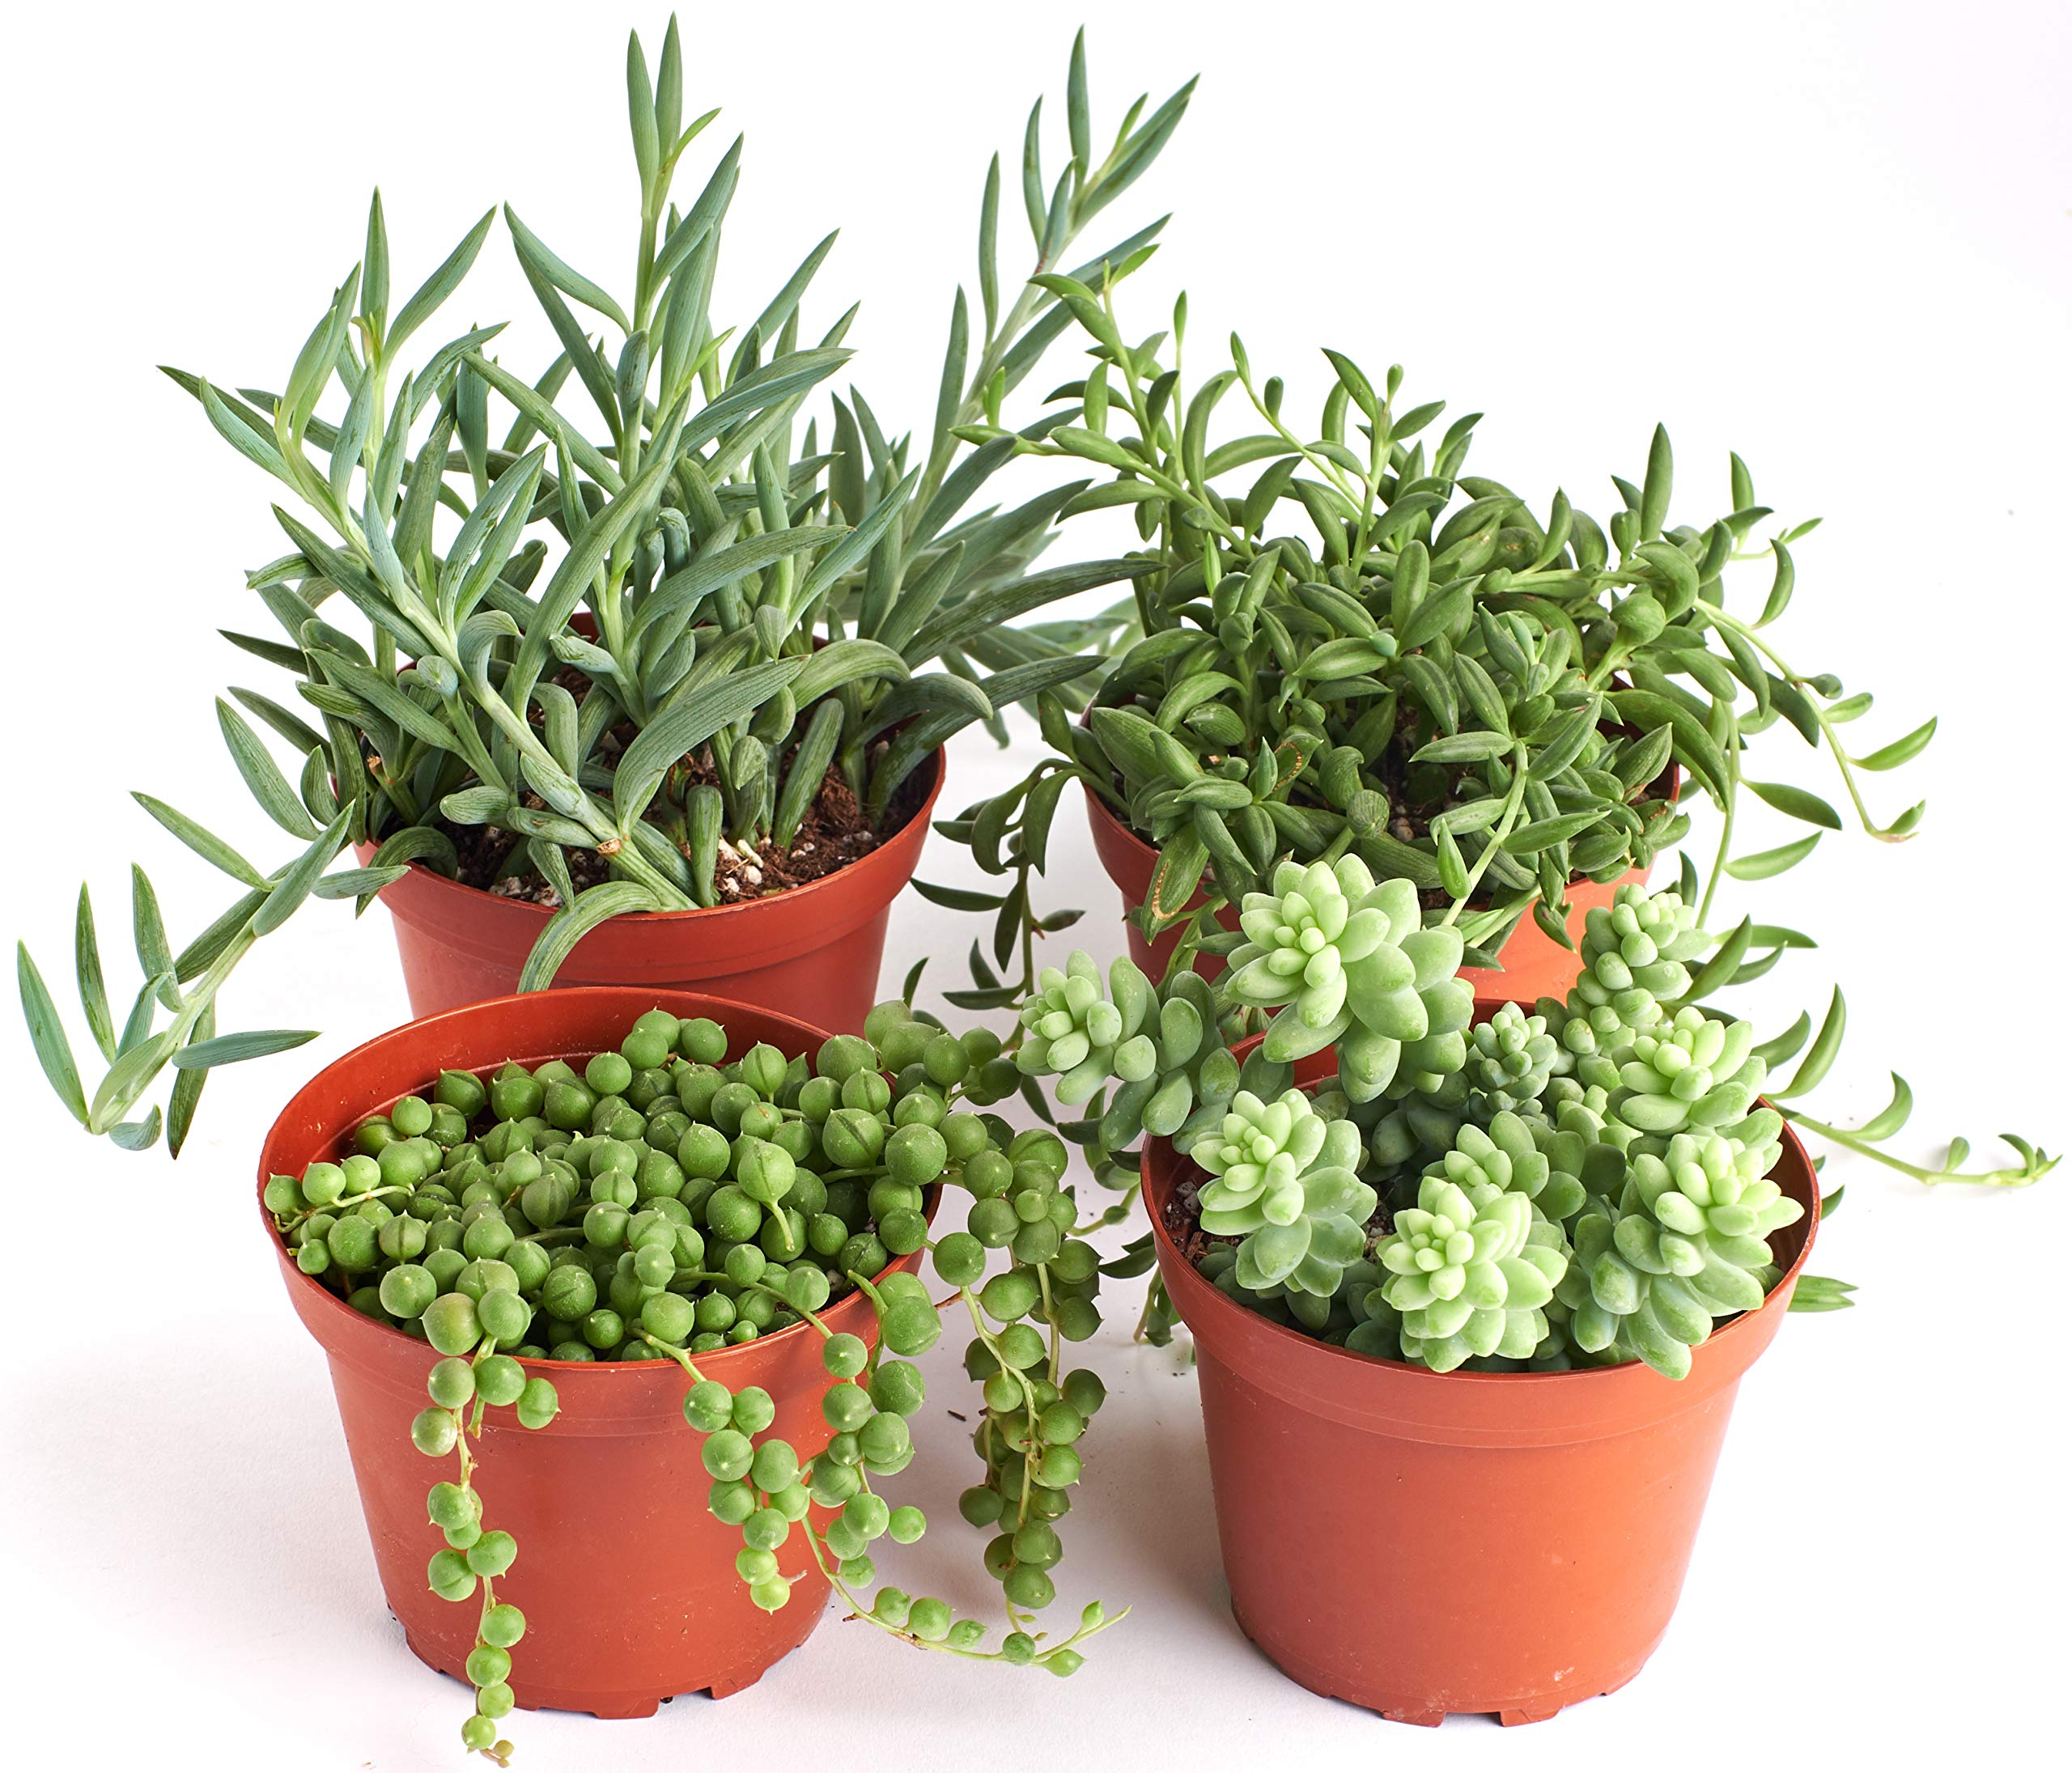 Shop Succulents | Hanging Live Succulent Plants, Hand Selected Pearls, Bananas, String of Fishhooks & Burrito Sedum Variety in 4'' Grow Pots | Collection of 4 by Shop Succulents